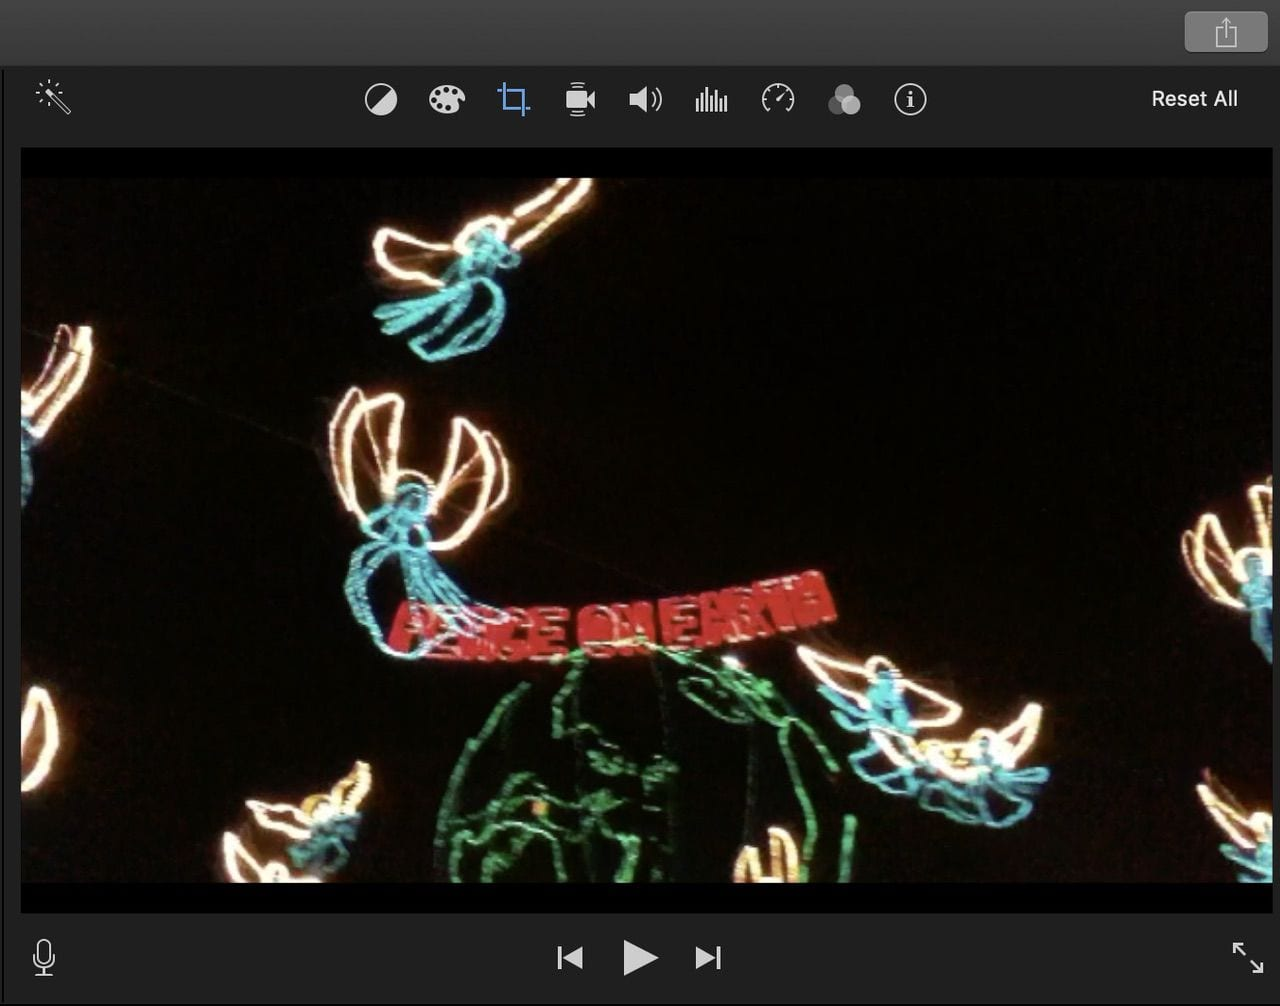 Editing tools to improve your video or photos are located just above the preview window.